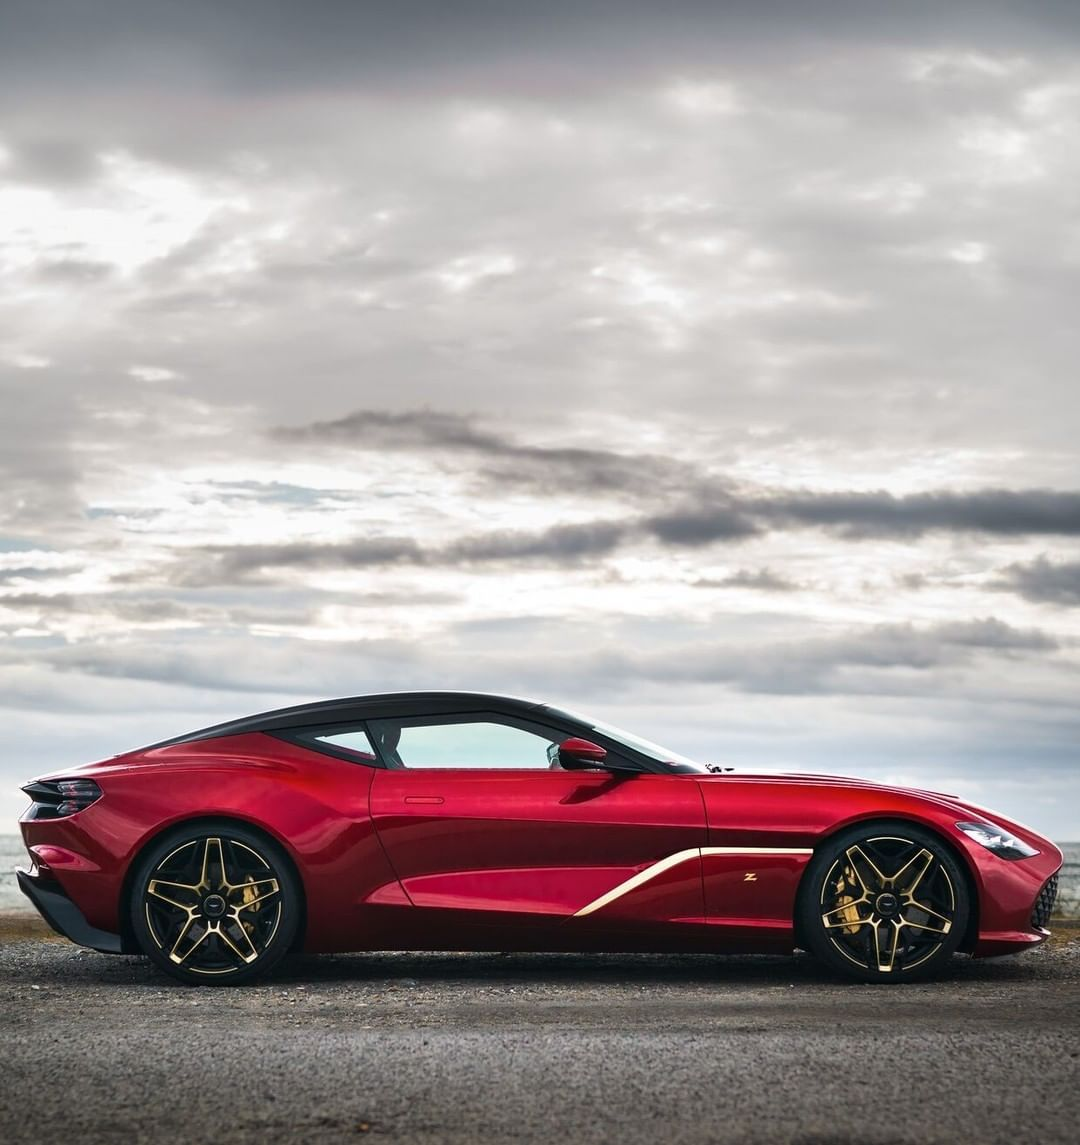 Aston Martin On Instagram A True Modern Classic Dbs Gt Zagato Is The Modern Twin To The Db4 Gt Zagato Continuation And Feature In 2020 Aston Martin Super Cars Car